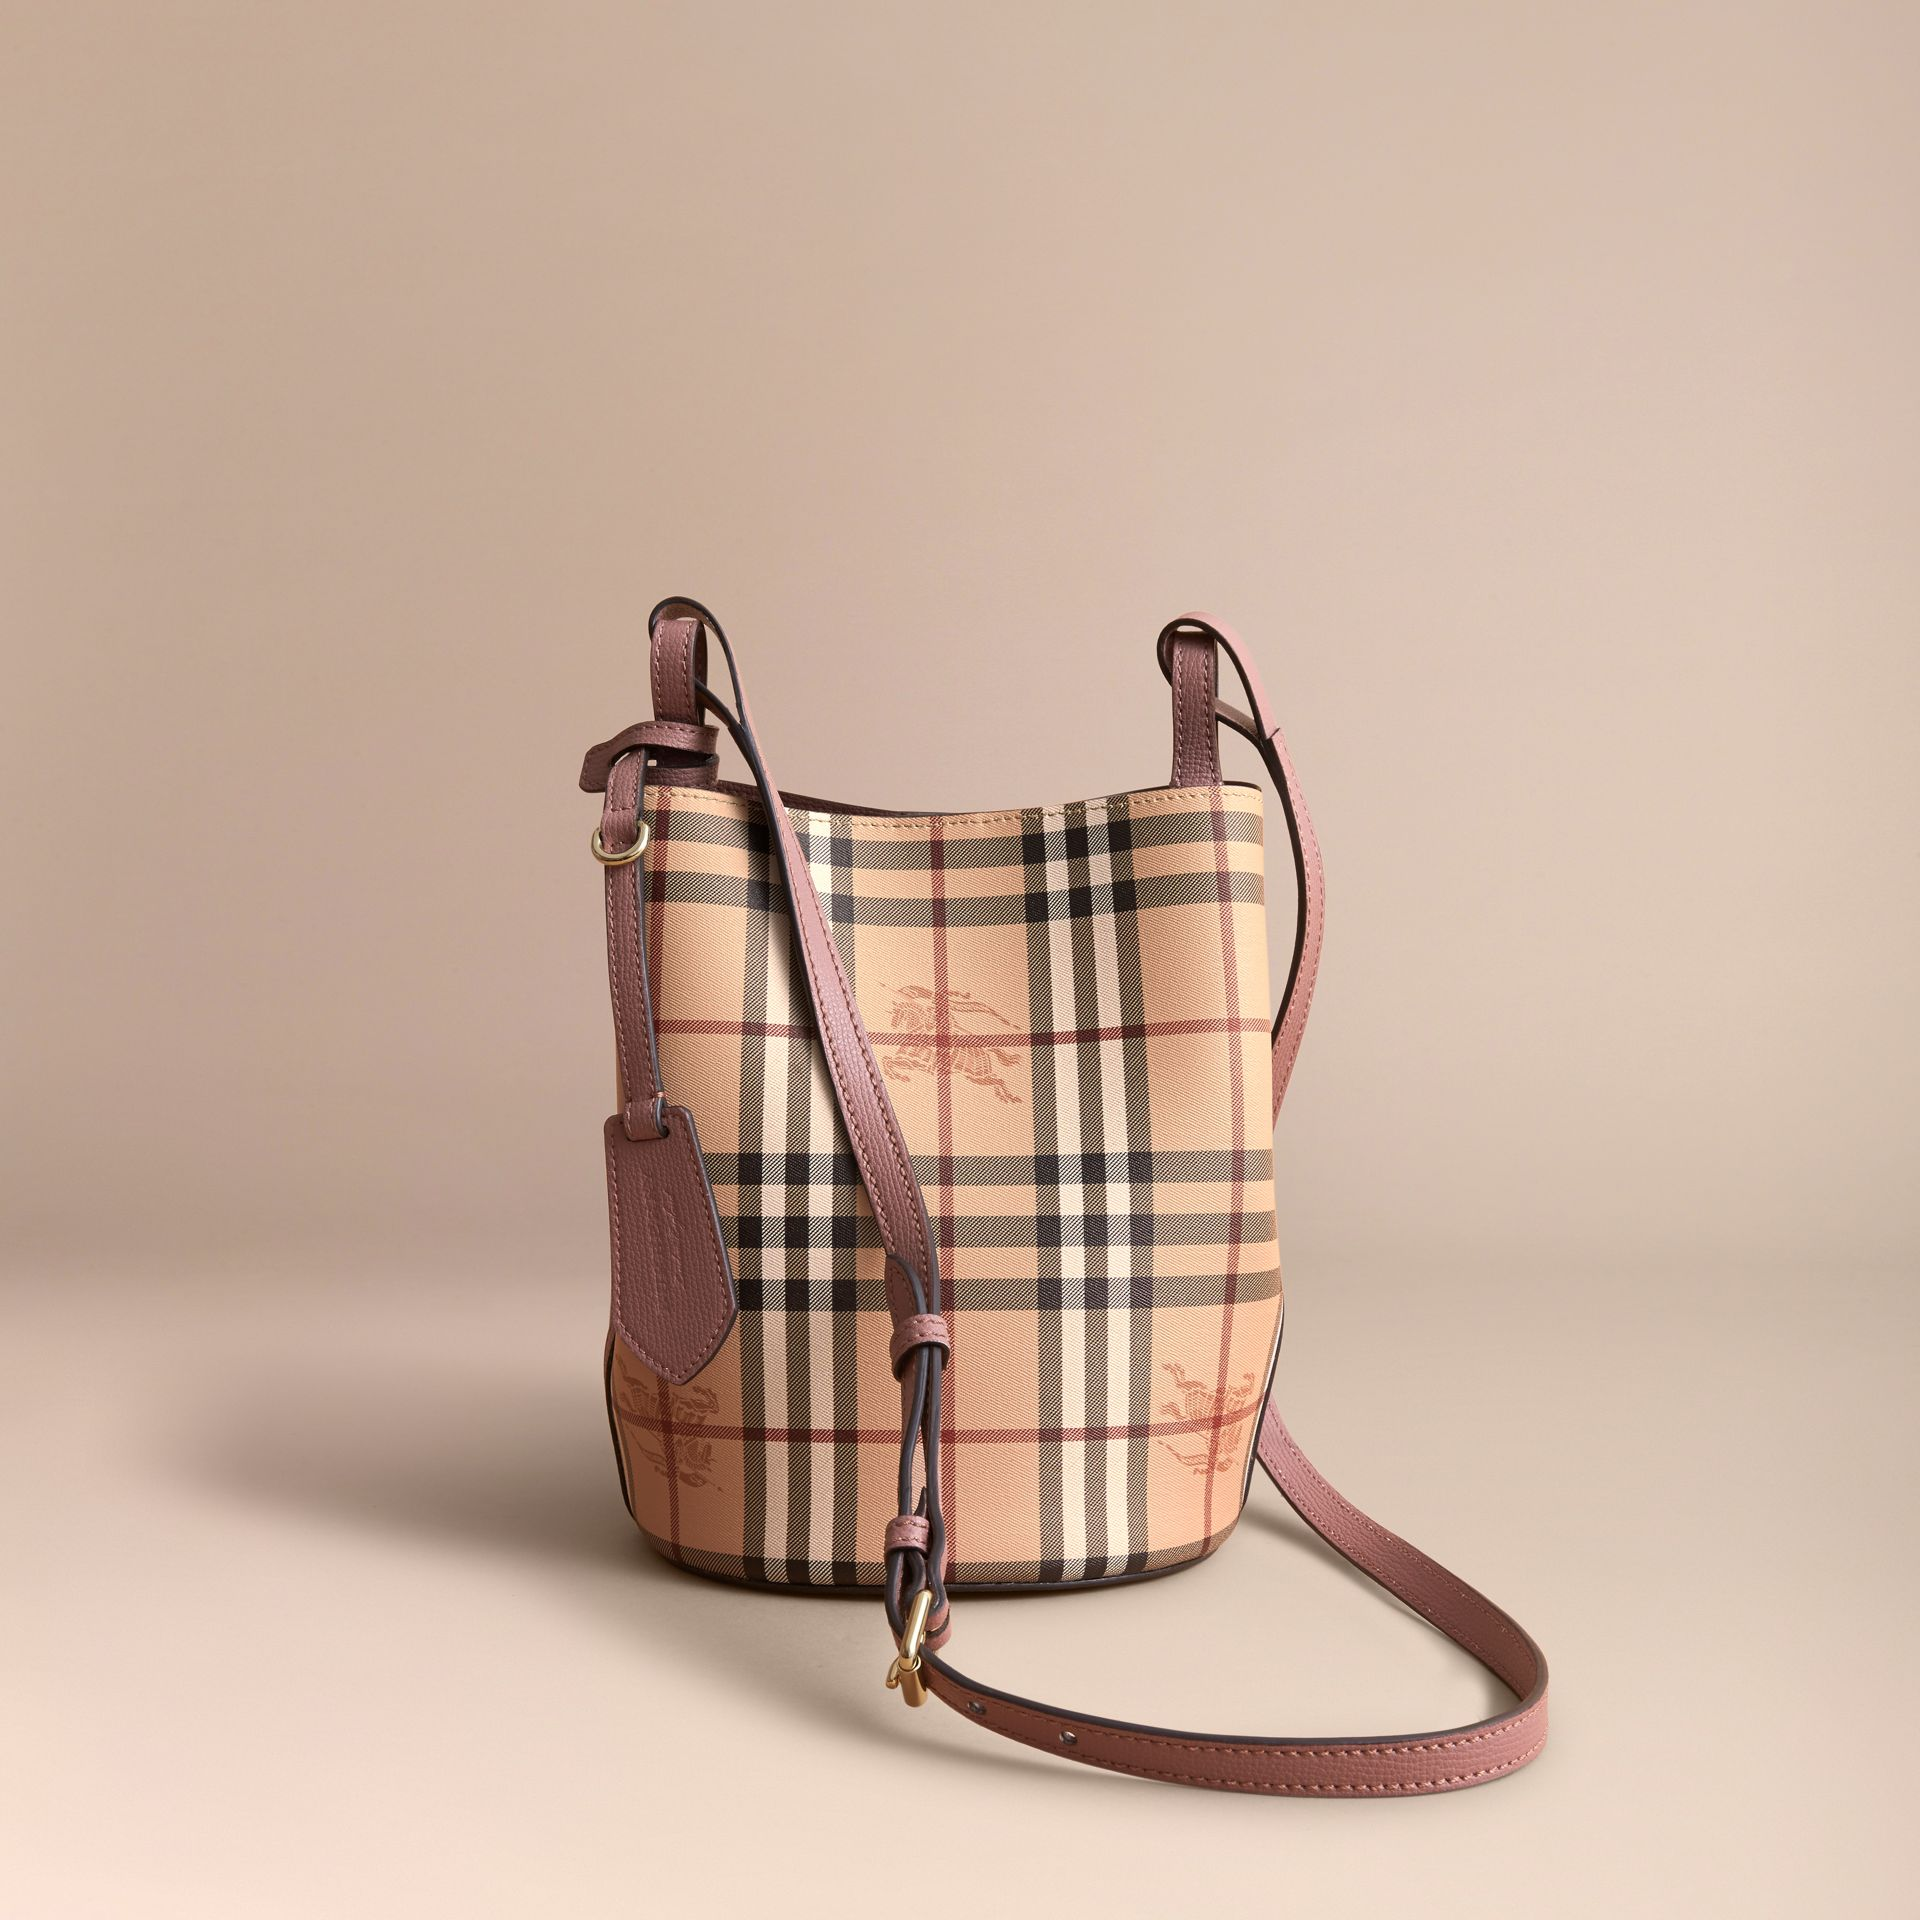 Leather and Haymarket Check Crossbody Bucket Bag in Light Elderberry - Women | Burberry - gallery image 6